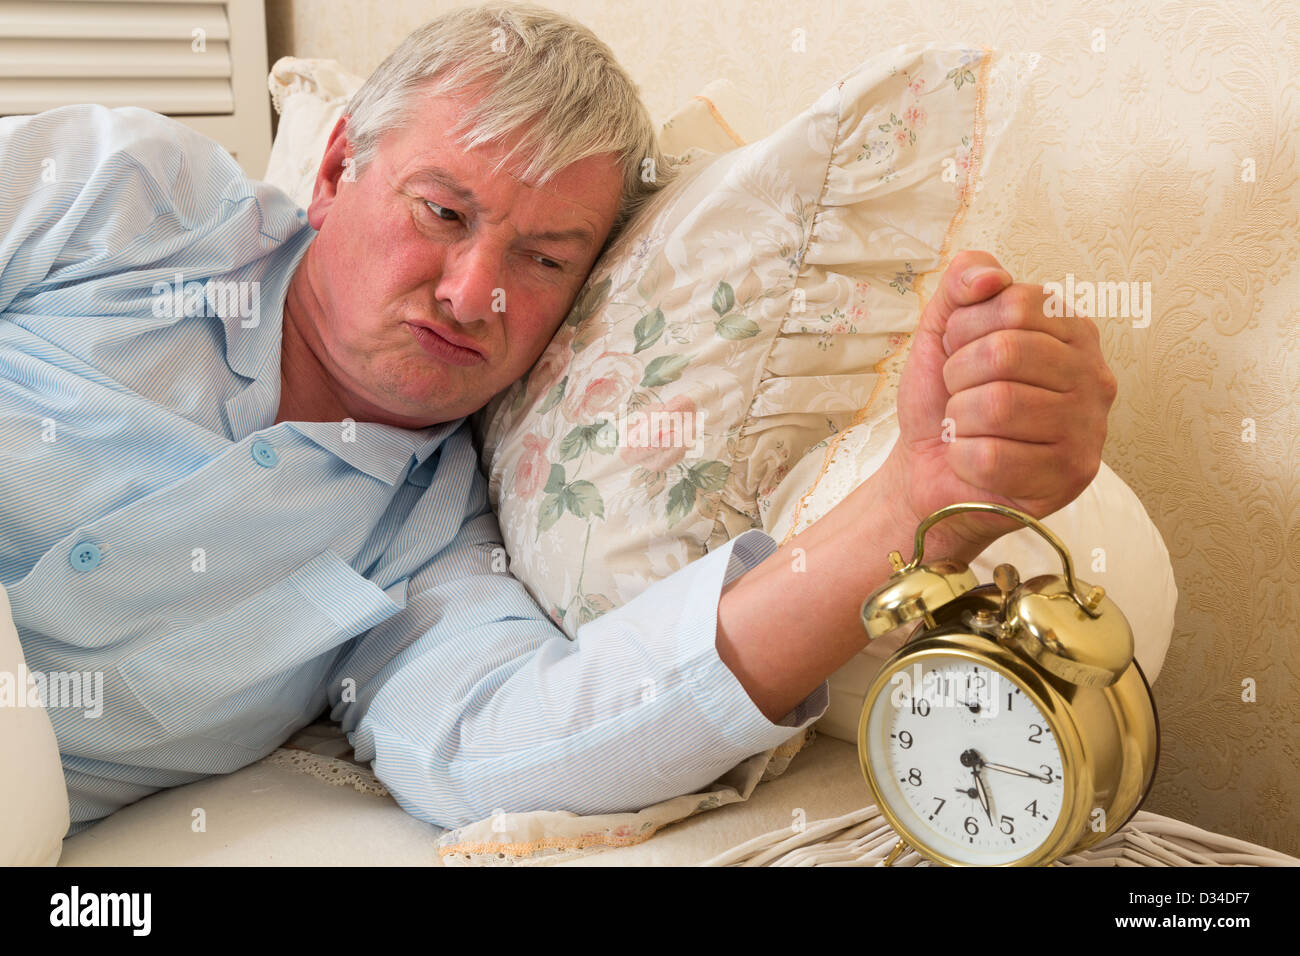 Bad tempered grumpy old man in bed - Stock Image